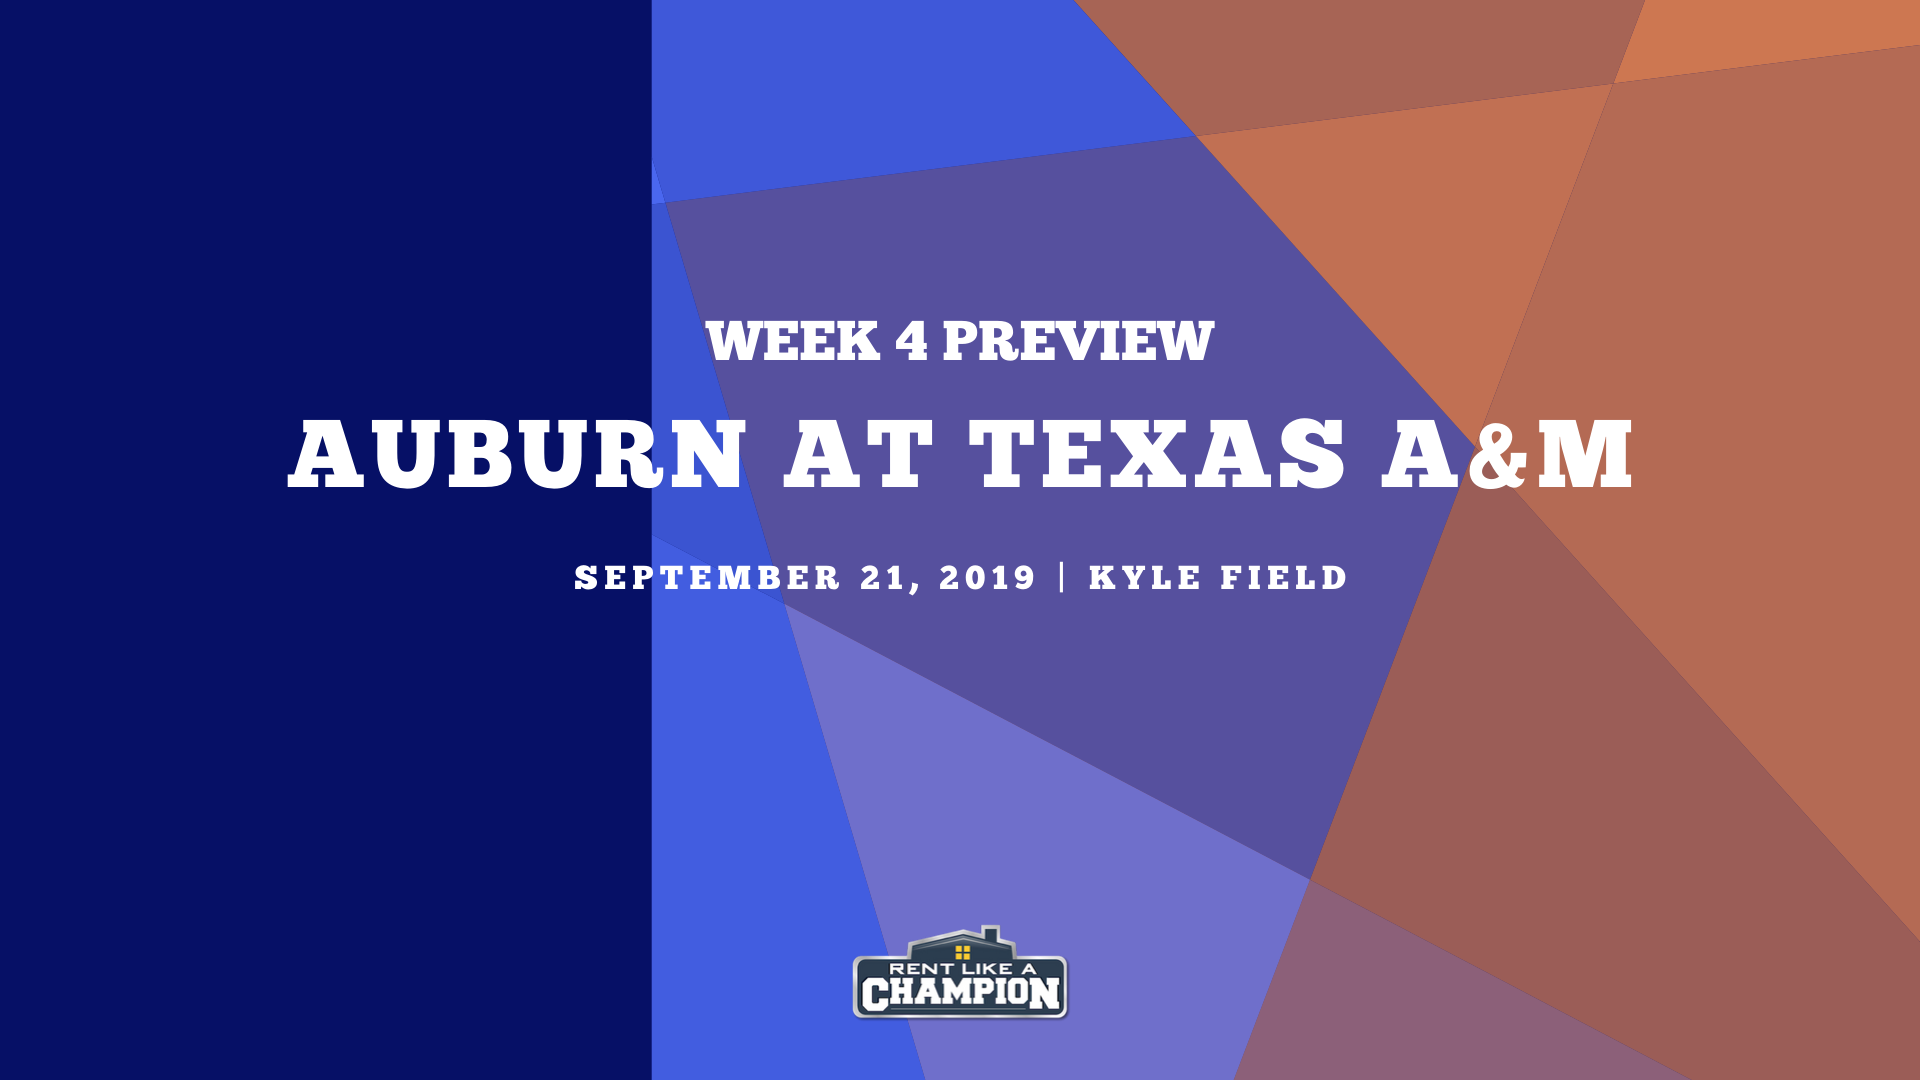 Auburn Game Preview Template (3)